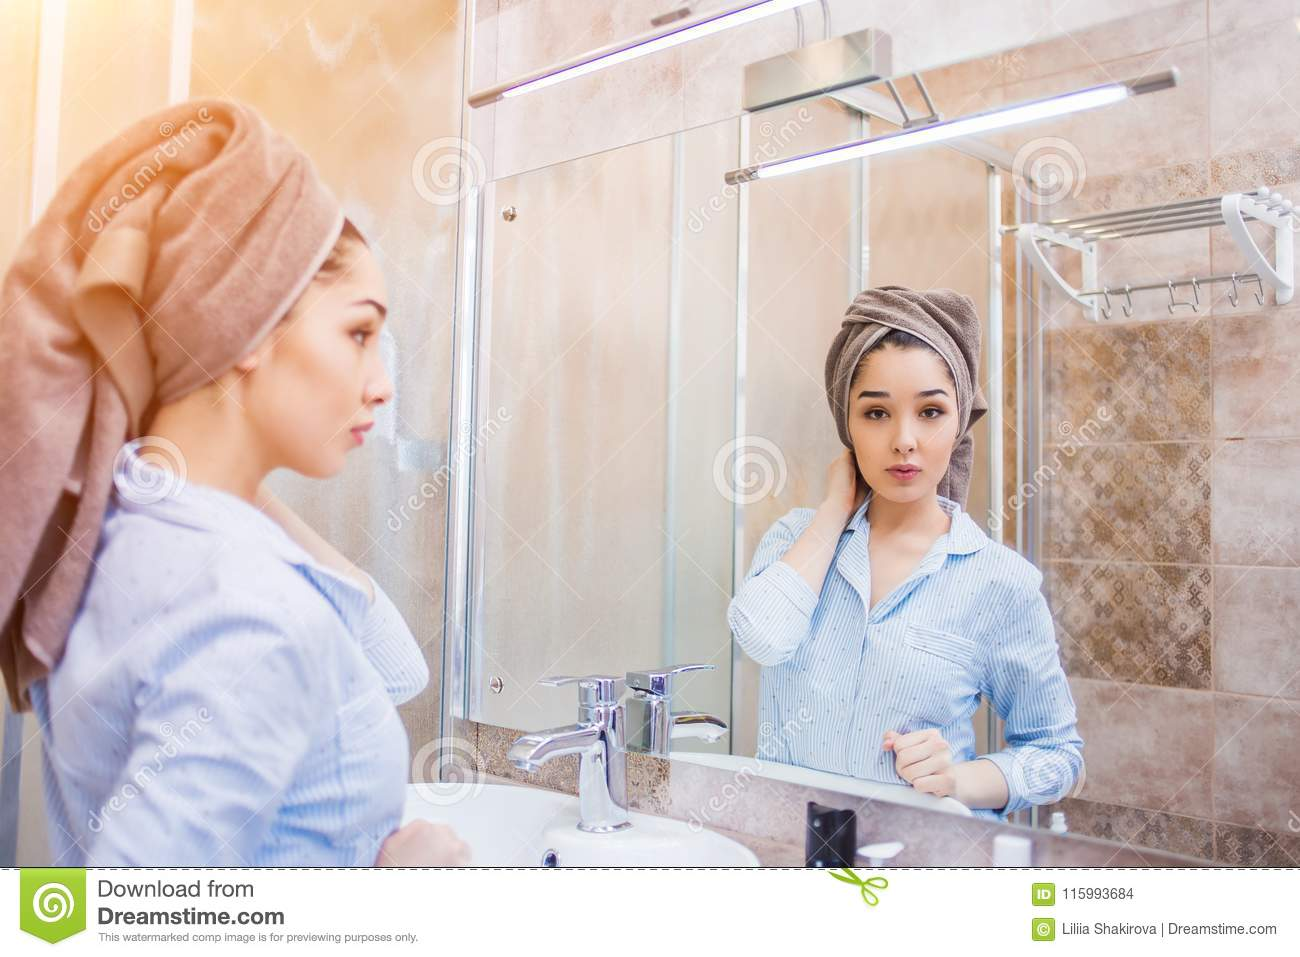 Beautiful woman in towels standing in bathroom after shower.